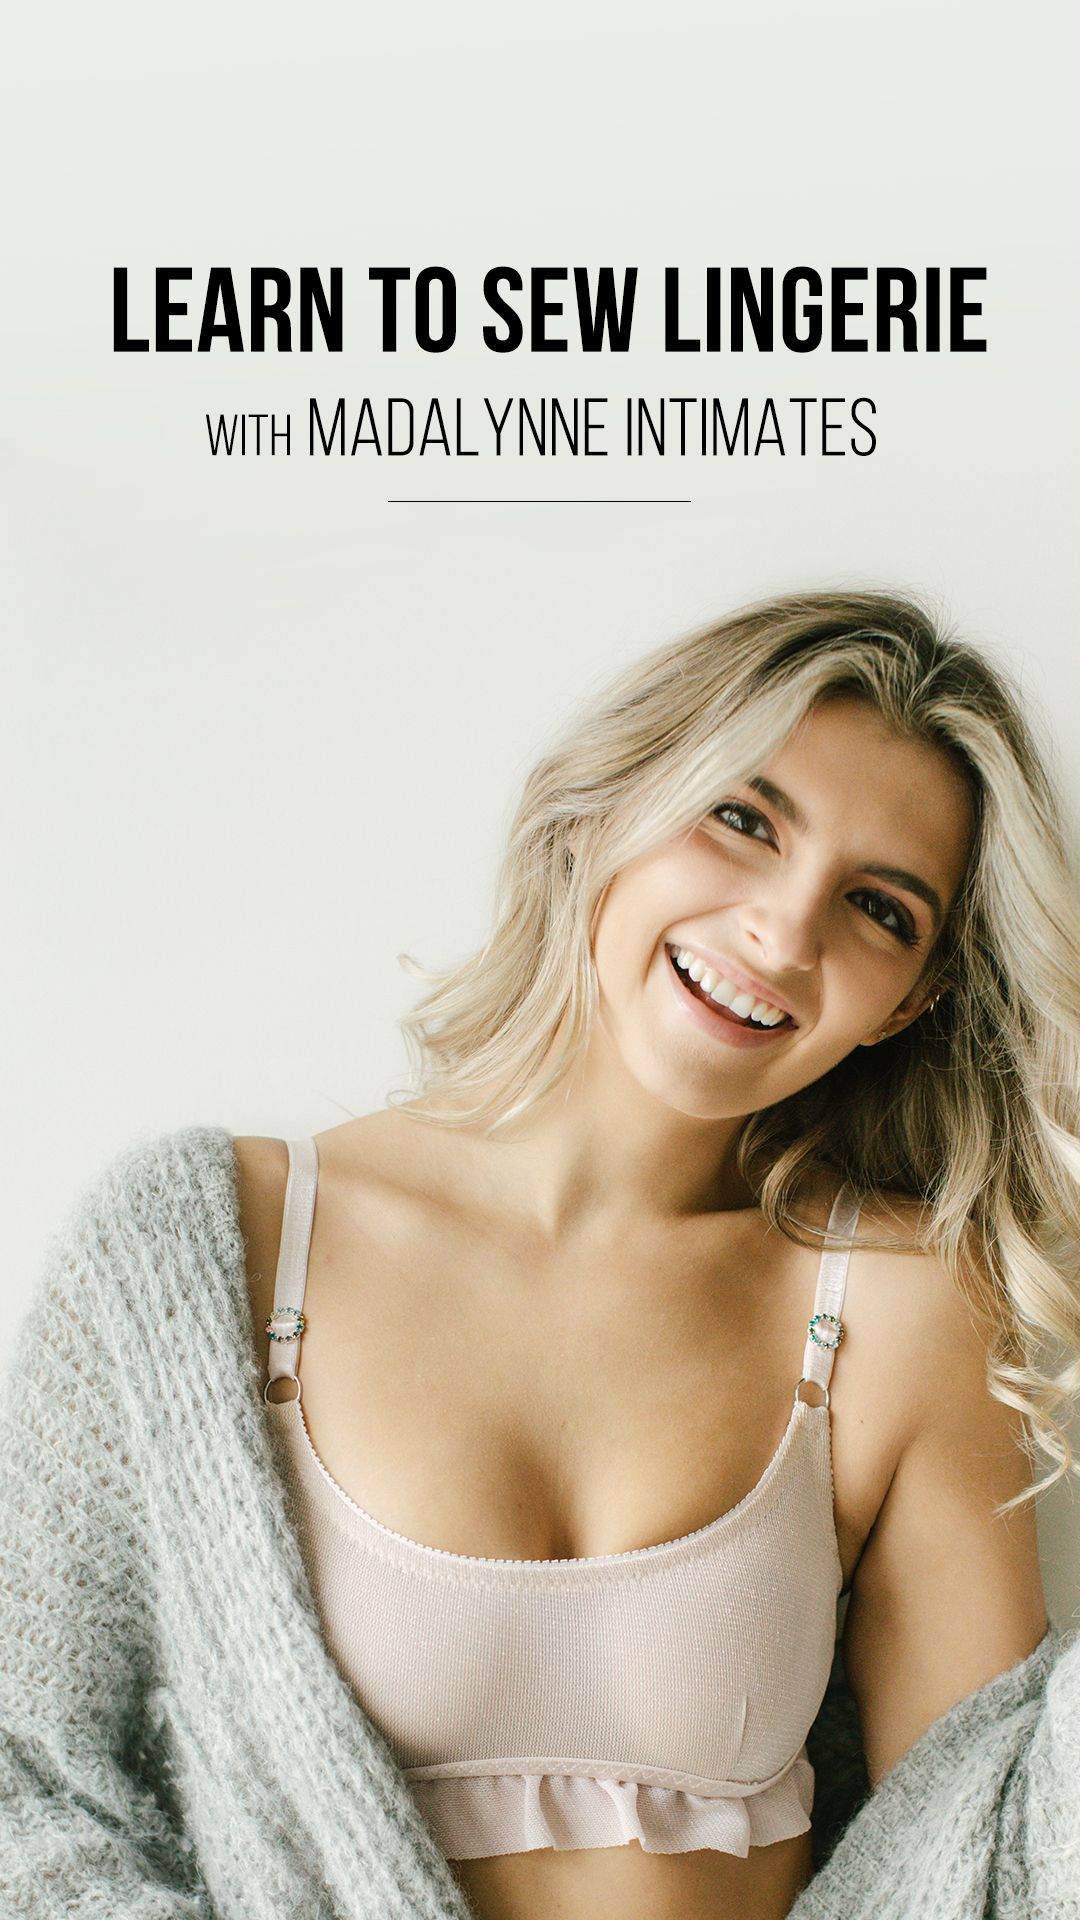 d4685ef71 Bralettes by Madalynne Intimates   Lingerie I Hand Crafted in Brooklyn